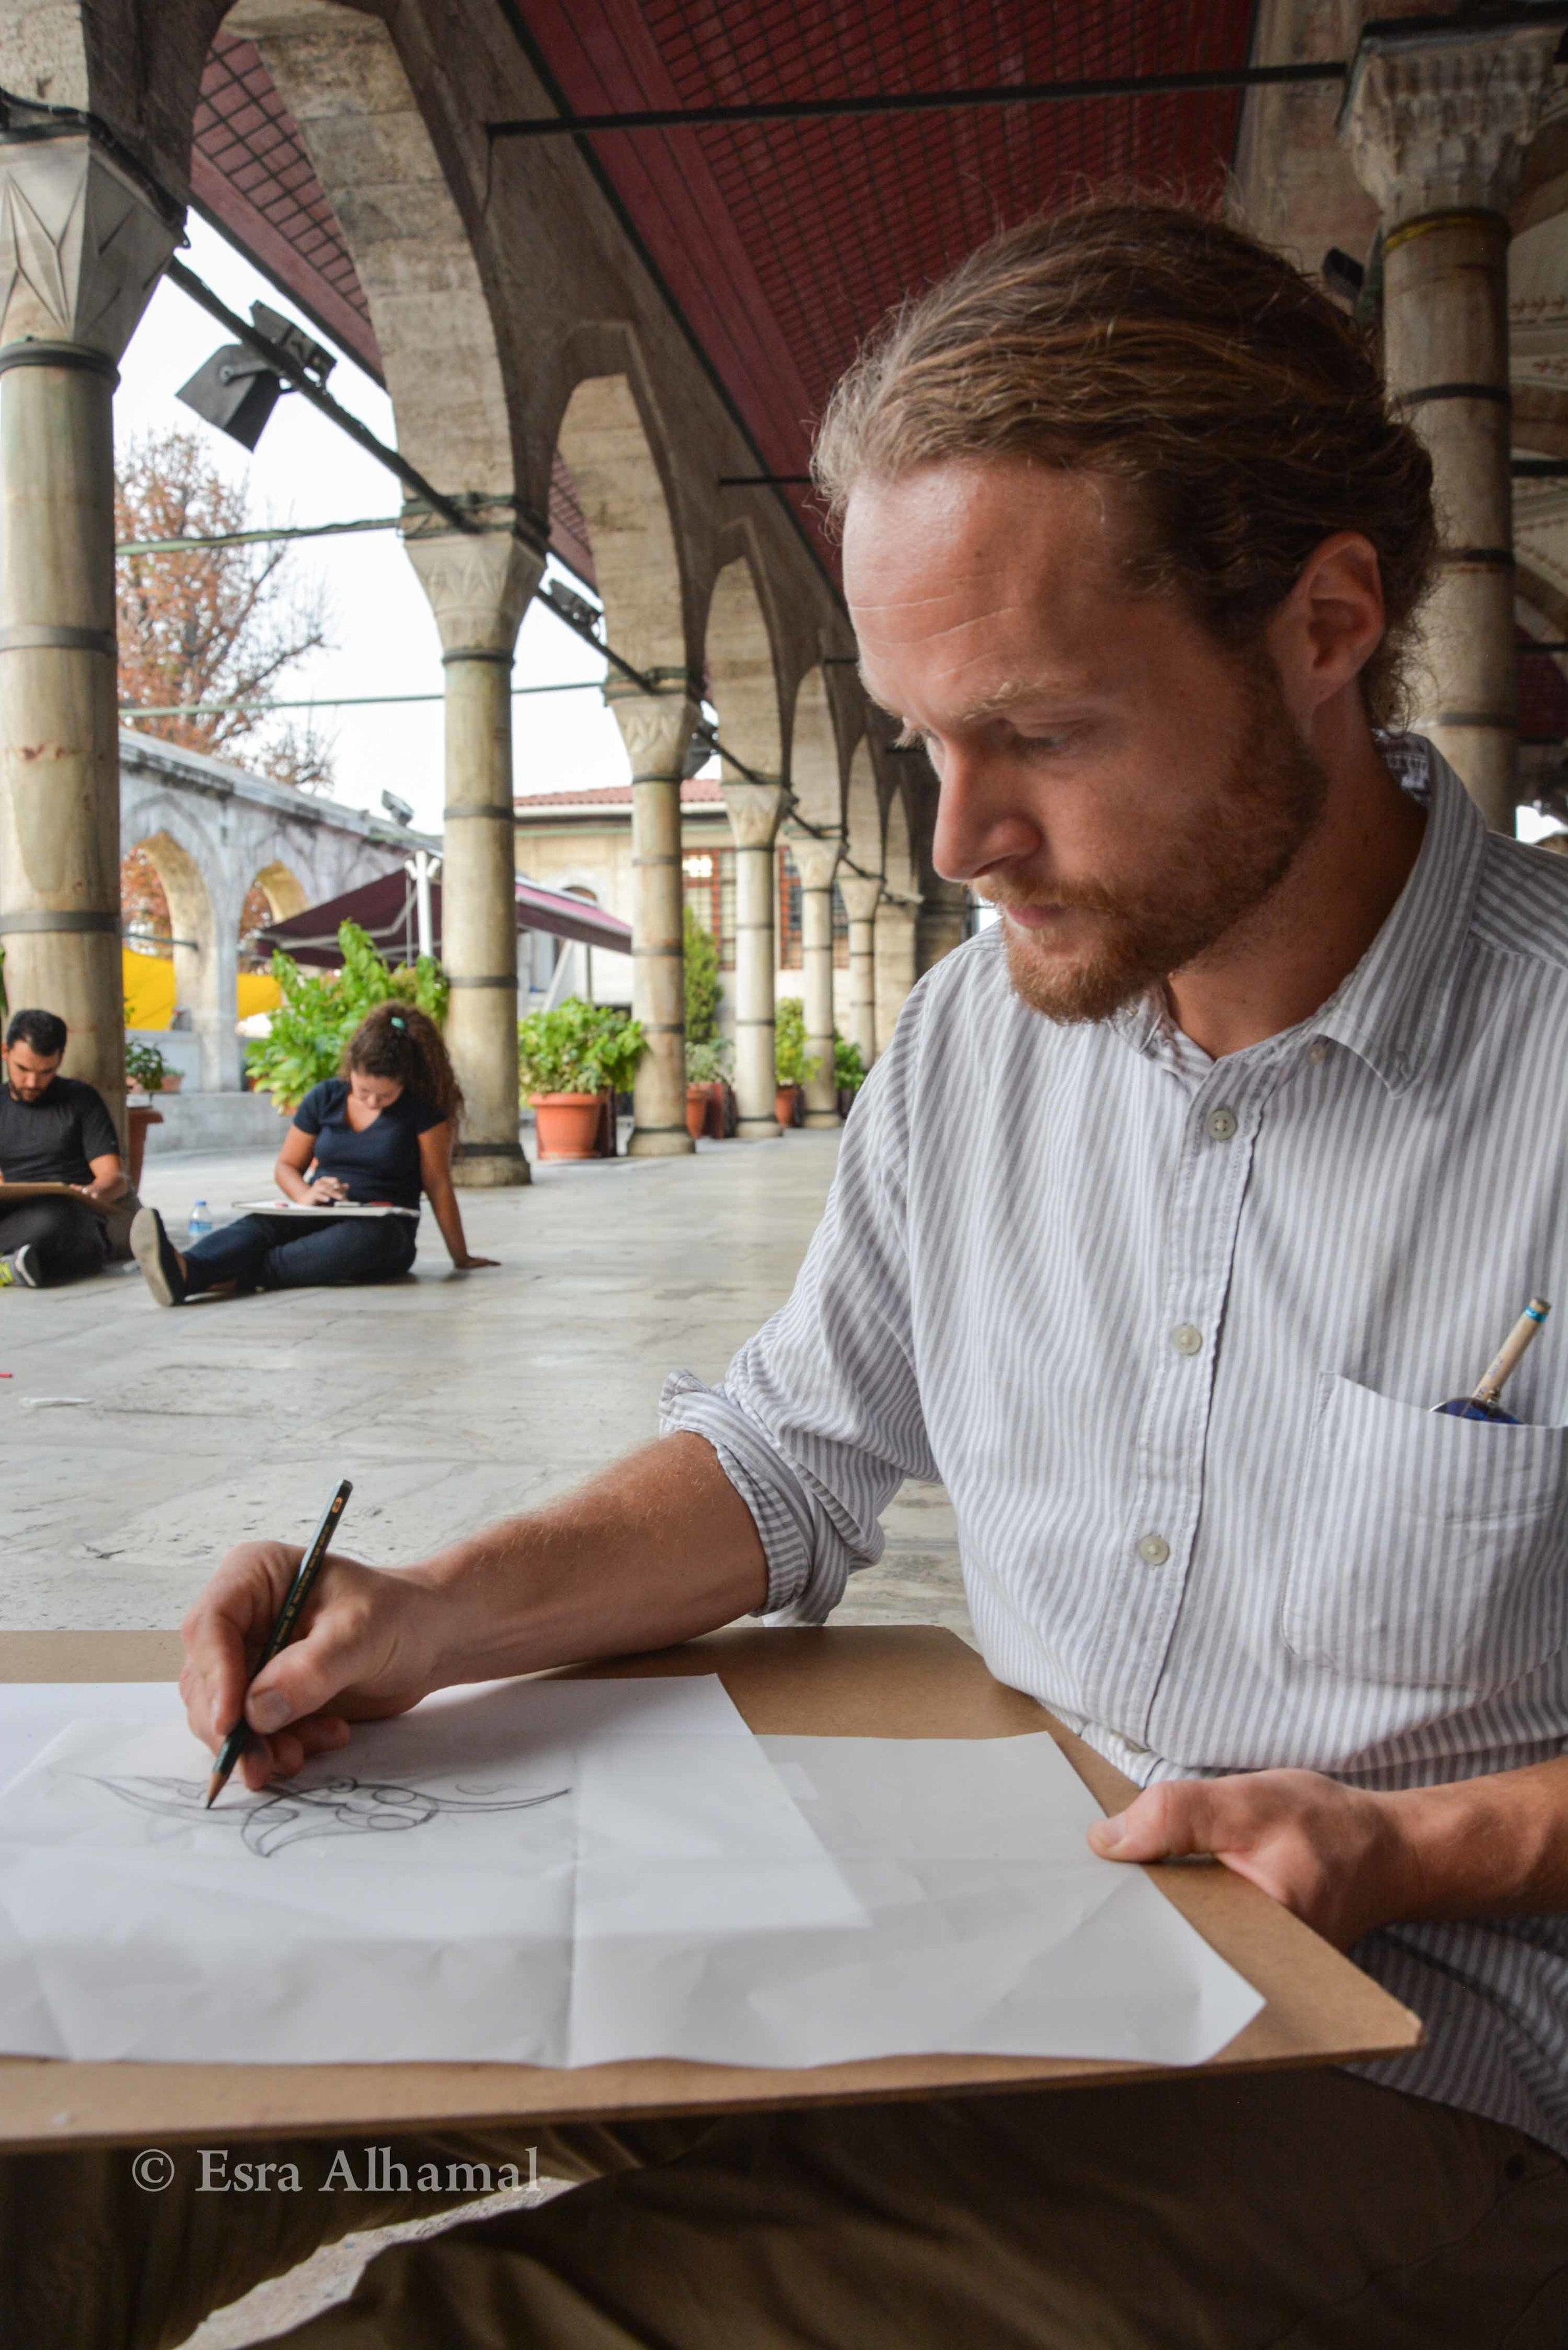 In Conversation with Adam Williamson - Islamic Art and Islamic Patterns